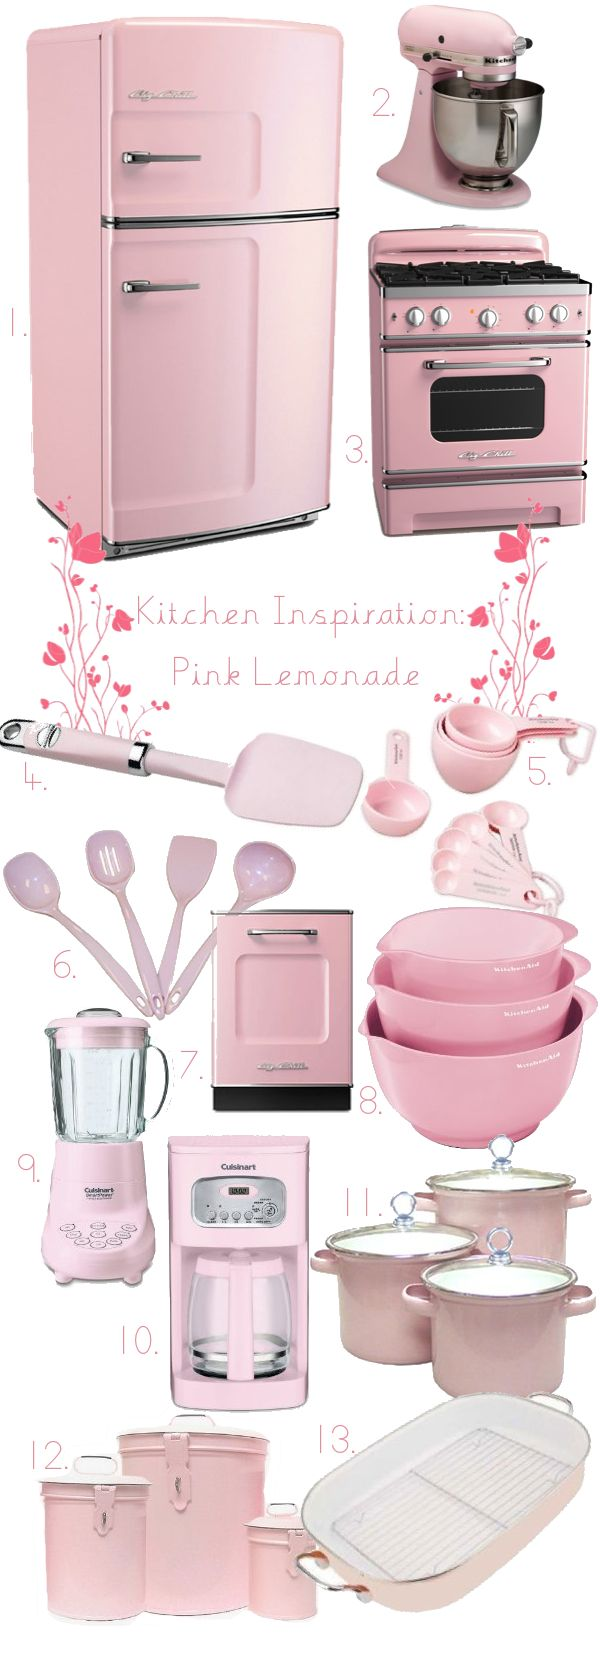 amazing Baby Pink Kitchen Appliances #6: Unfortunately Iu0027m married and if I bought any of these things in pink it ·  Retro Kitchen AppliancesPink ...